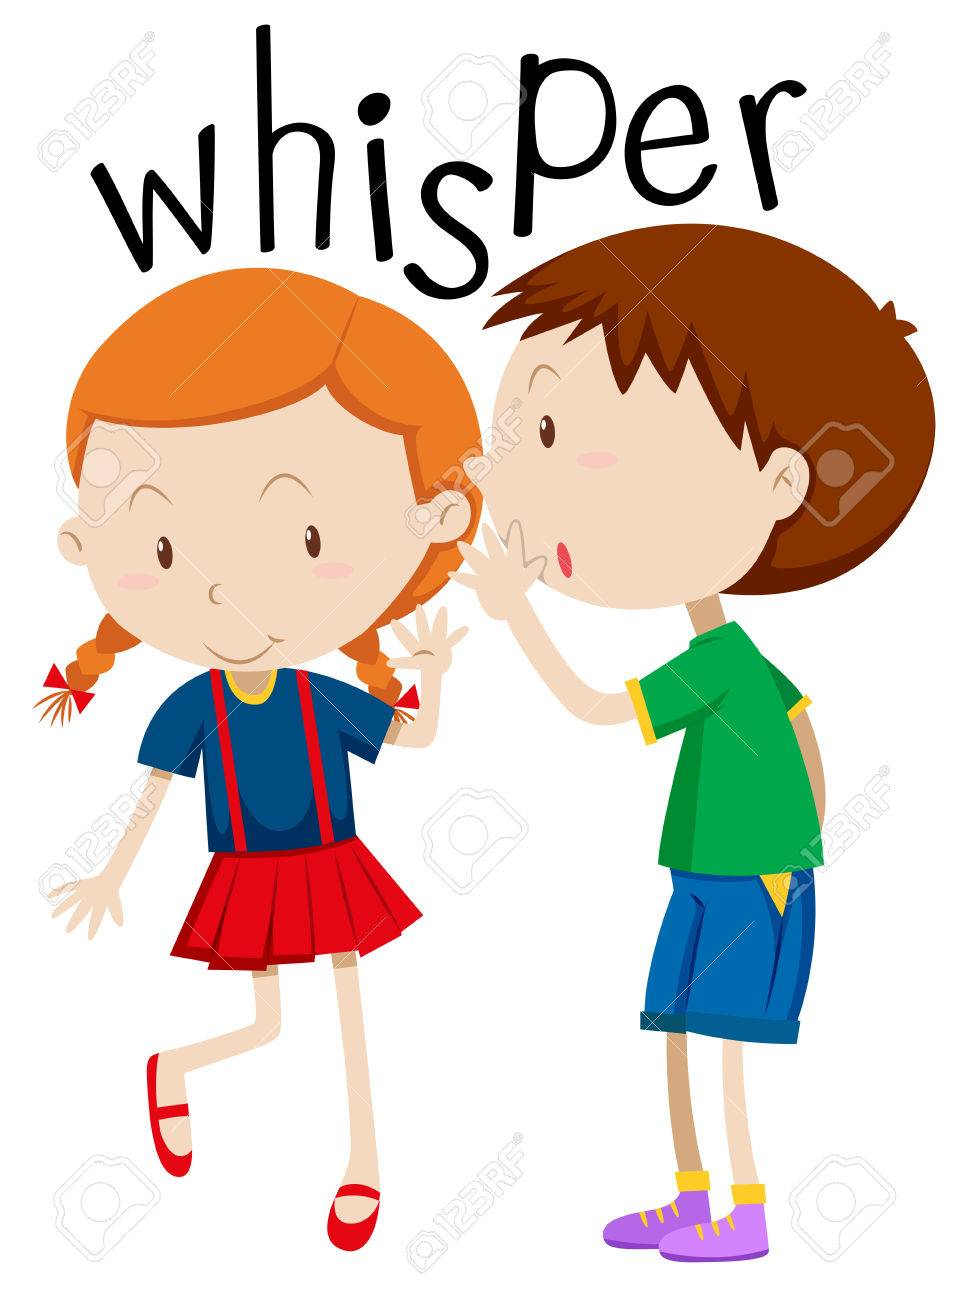 Whisper Phone Clipart.